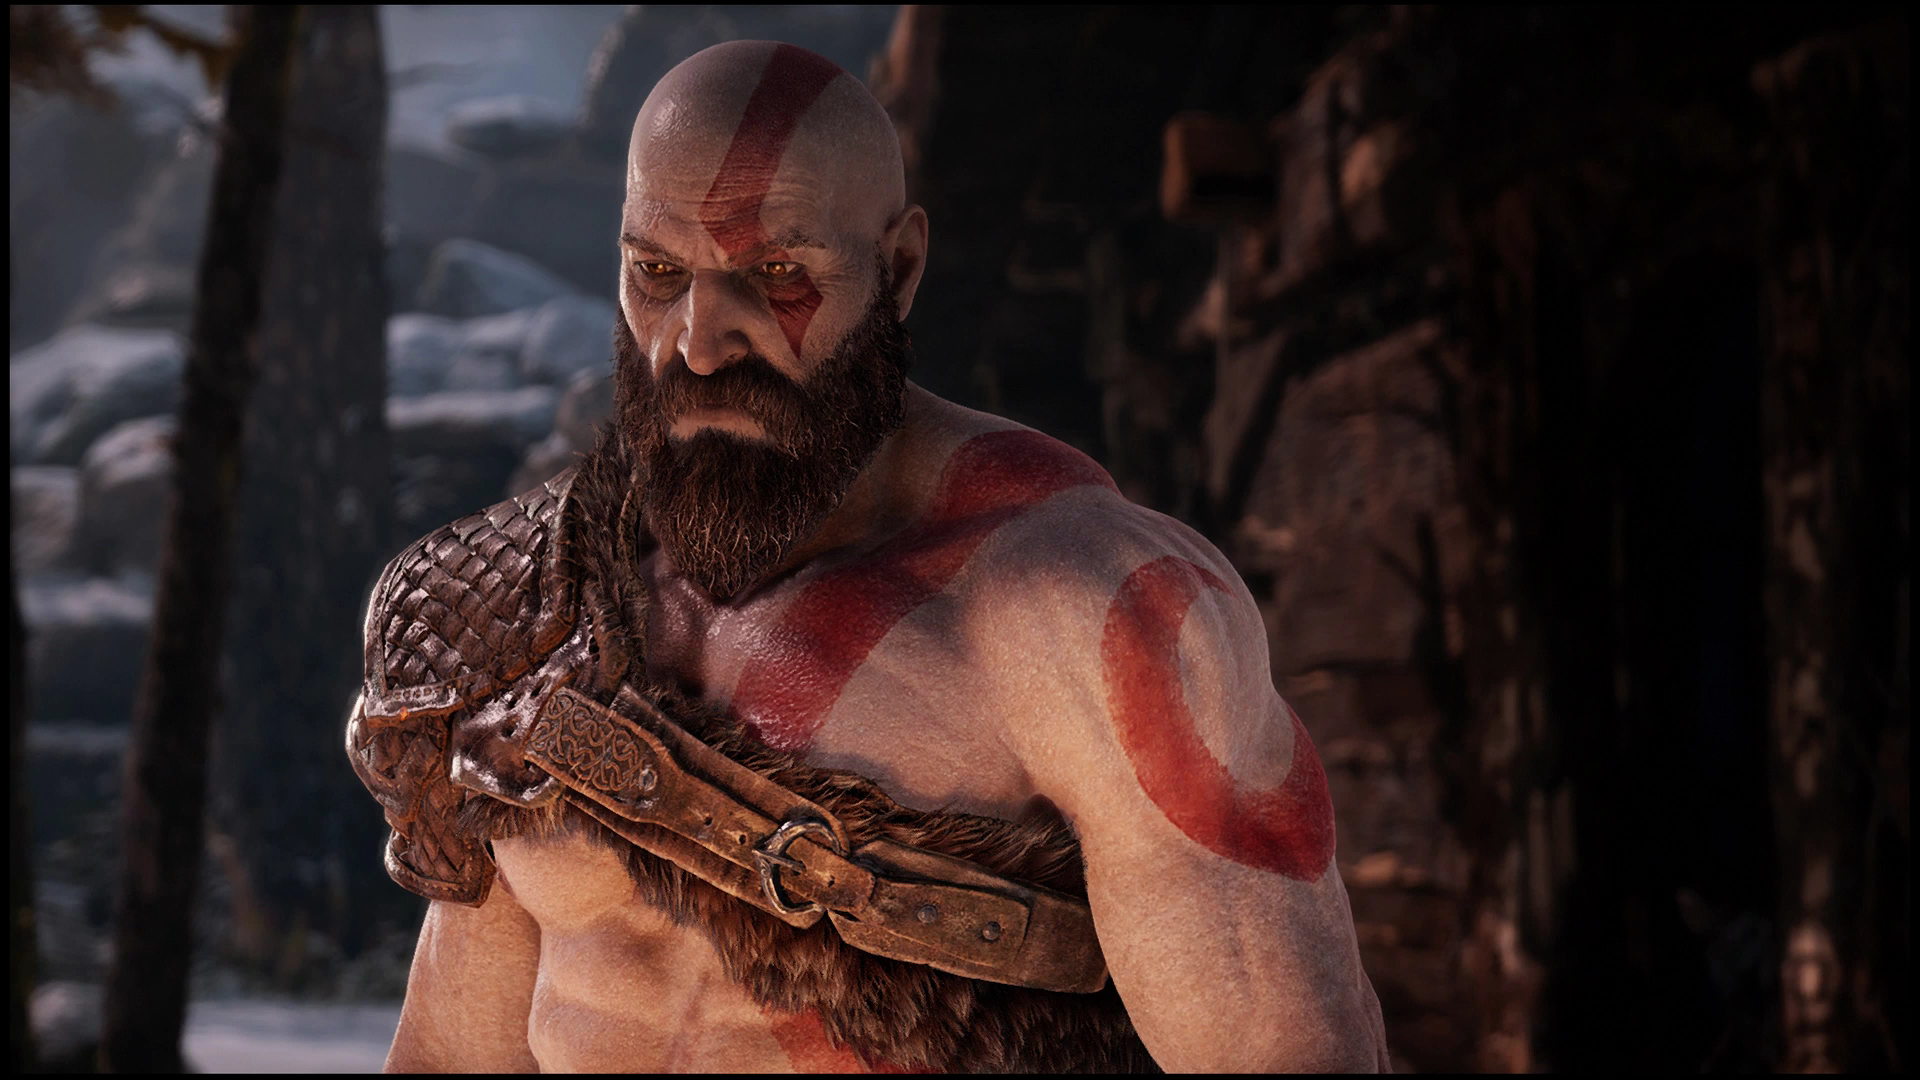 How To Get The Final Ending In God Of War